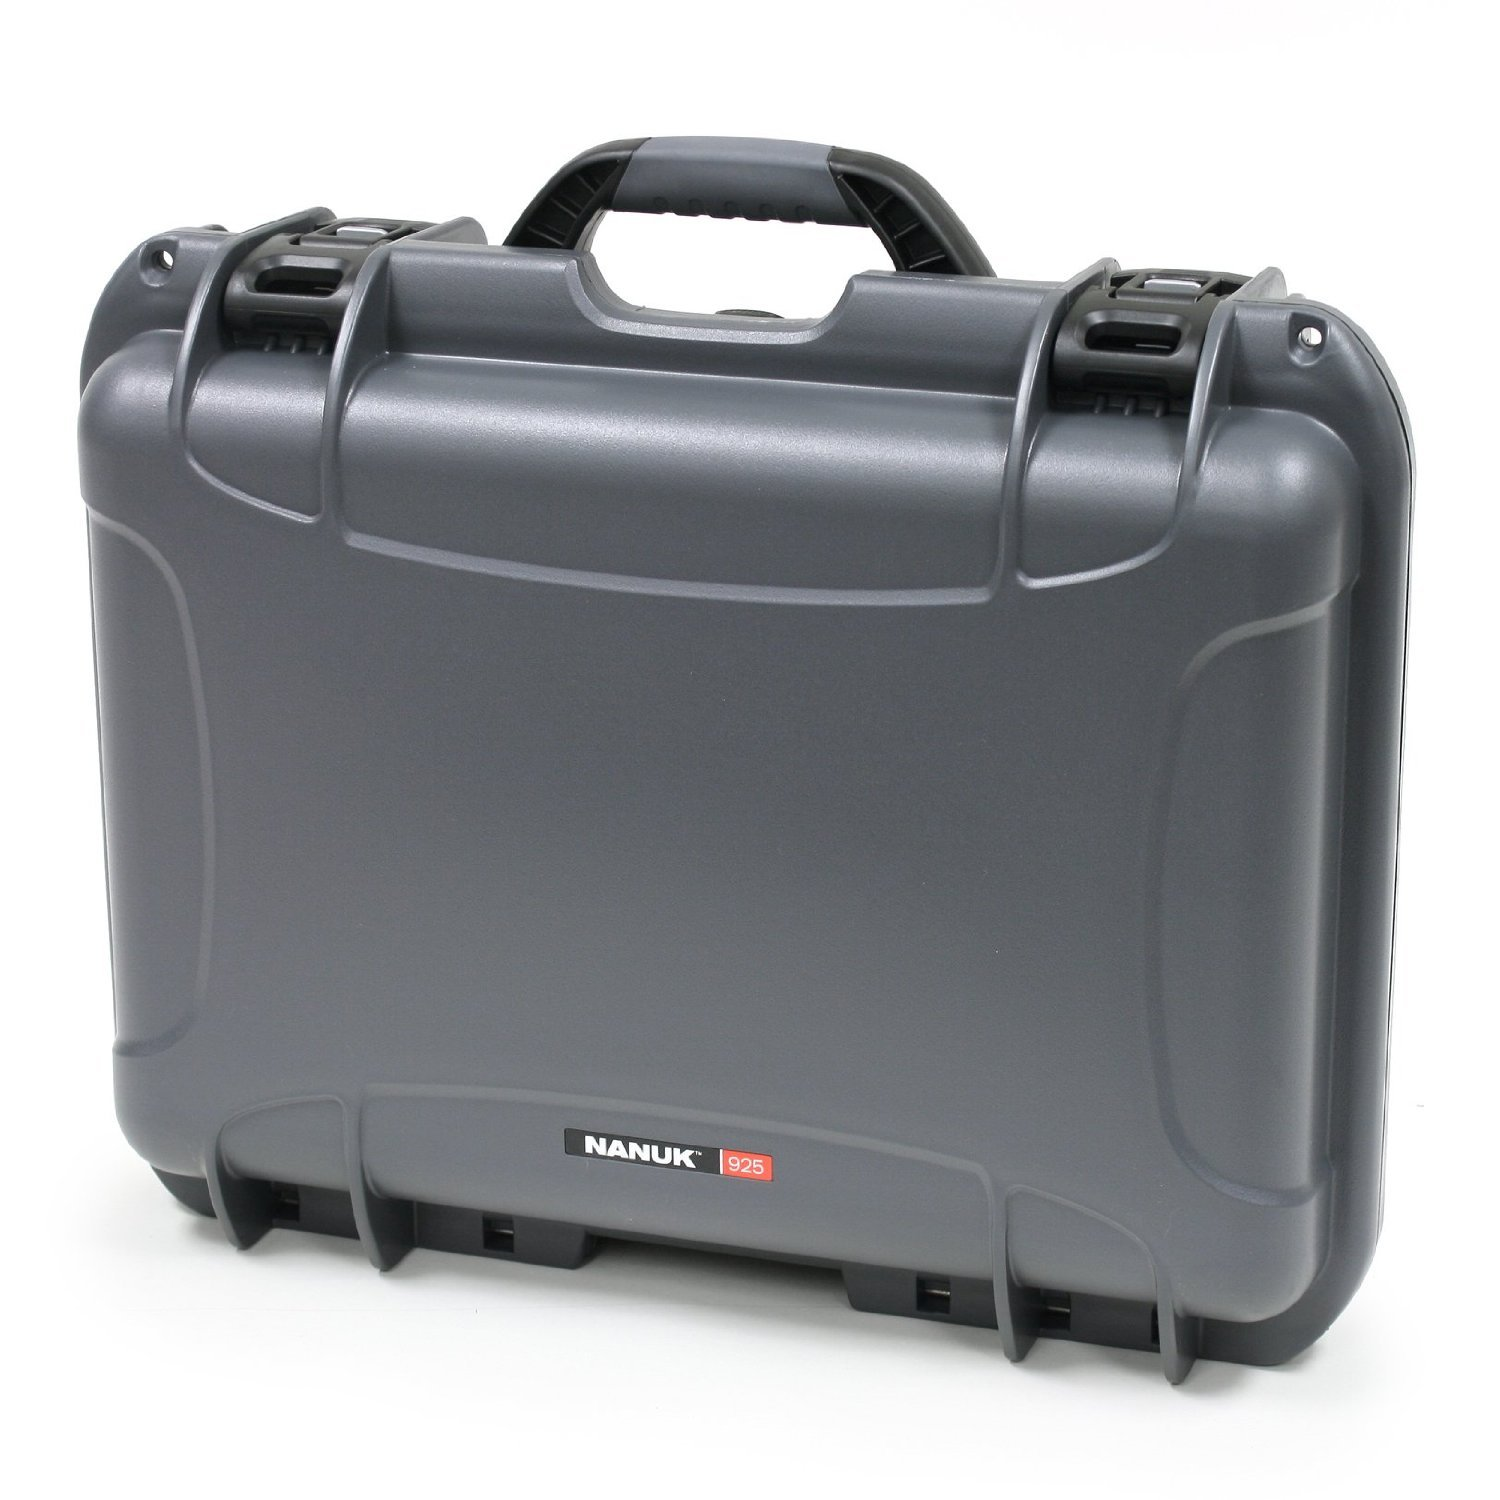 Nanuk 925Case with Cubed Foam (Graphite) [並行輸入品]   B019SZ8WRK